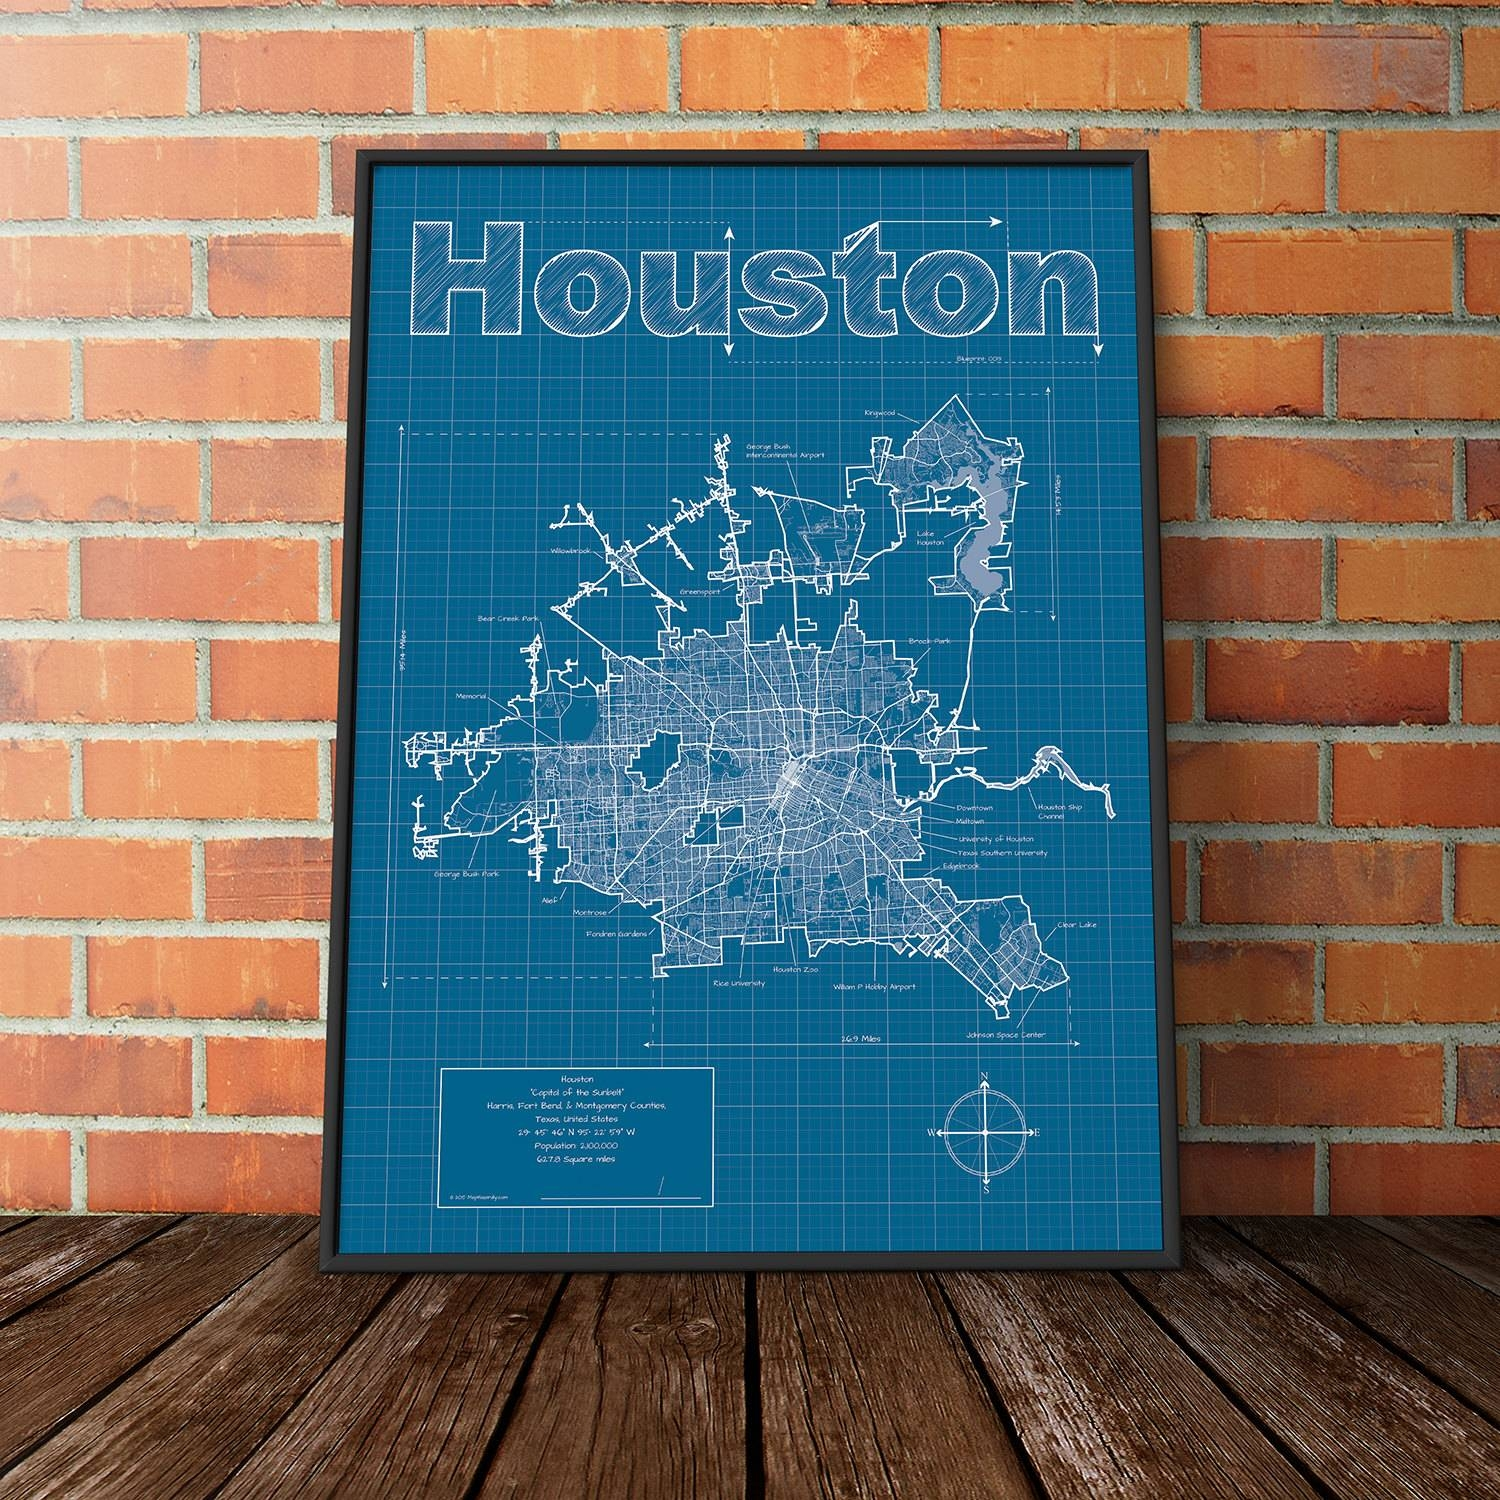 Houston Map Art Intended For Best And Newest Houston Map Wall Art (Gallery 1 of 20)